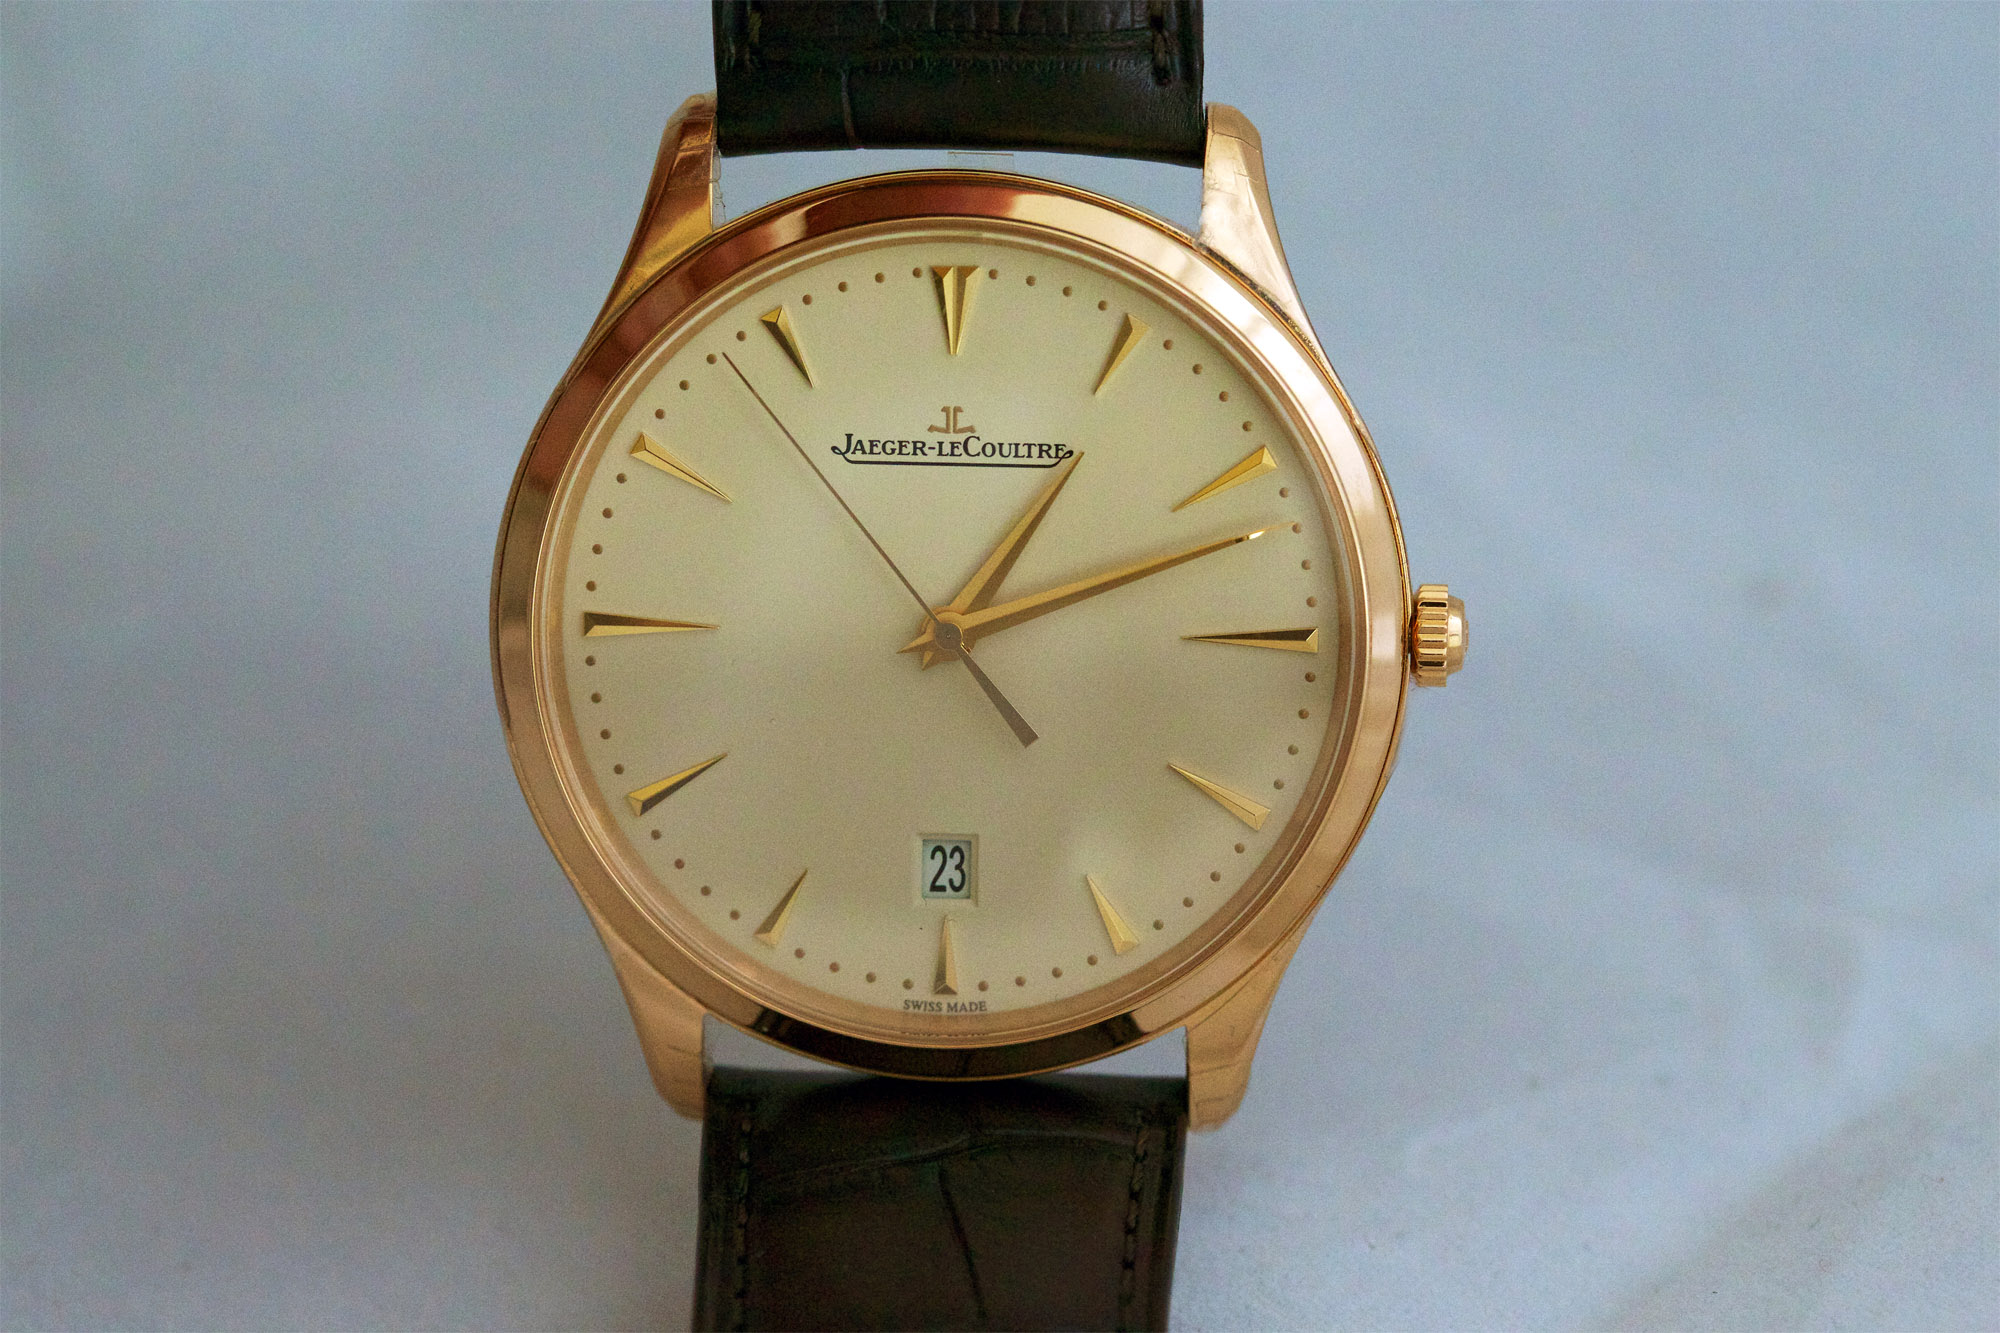 Jaeger-LeCoultre Master Ultra Thin Date replica watch